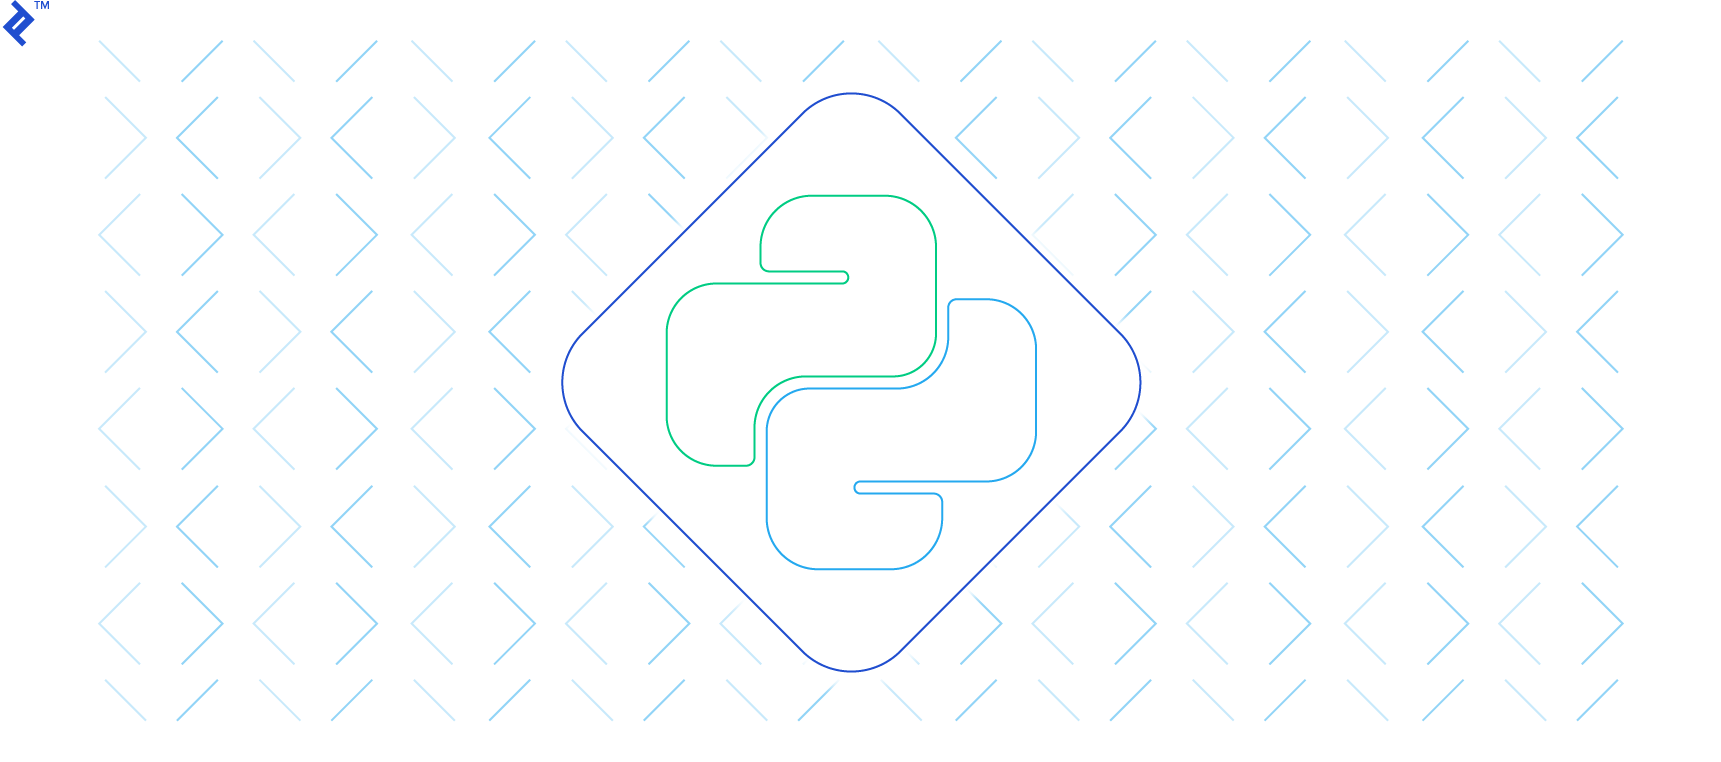 Python Design Patterns Guide | Toptal